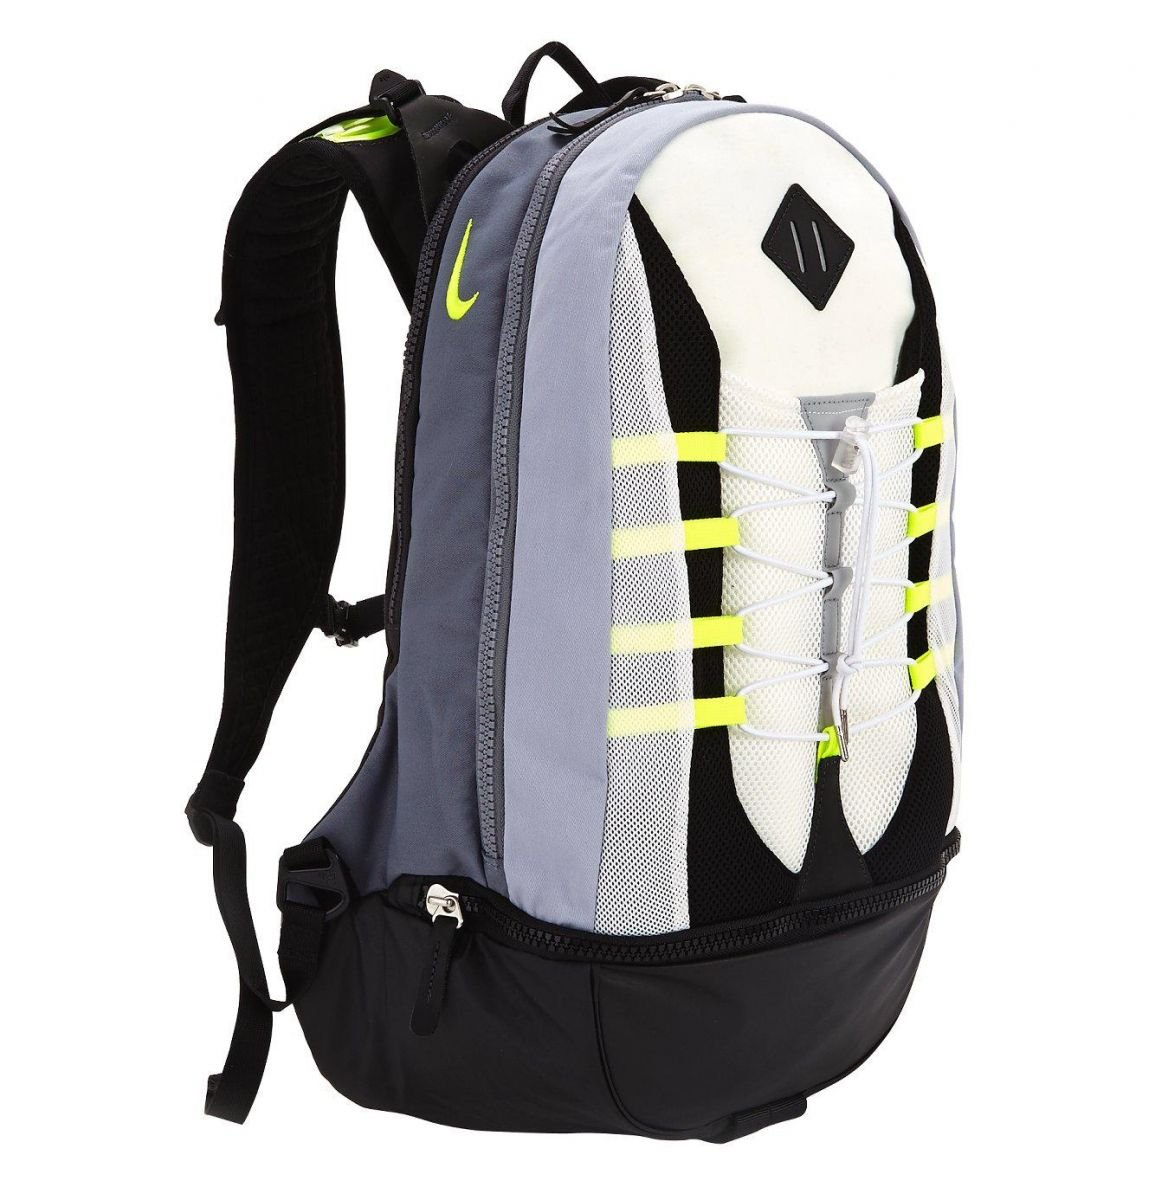 a2659469b47b Buy Nike Air Max 95 Pursuit Backpack in Cheap Price on Alibaba.com